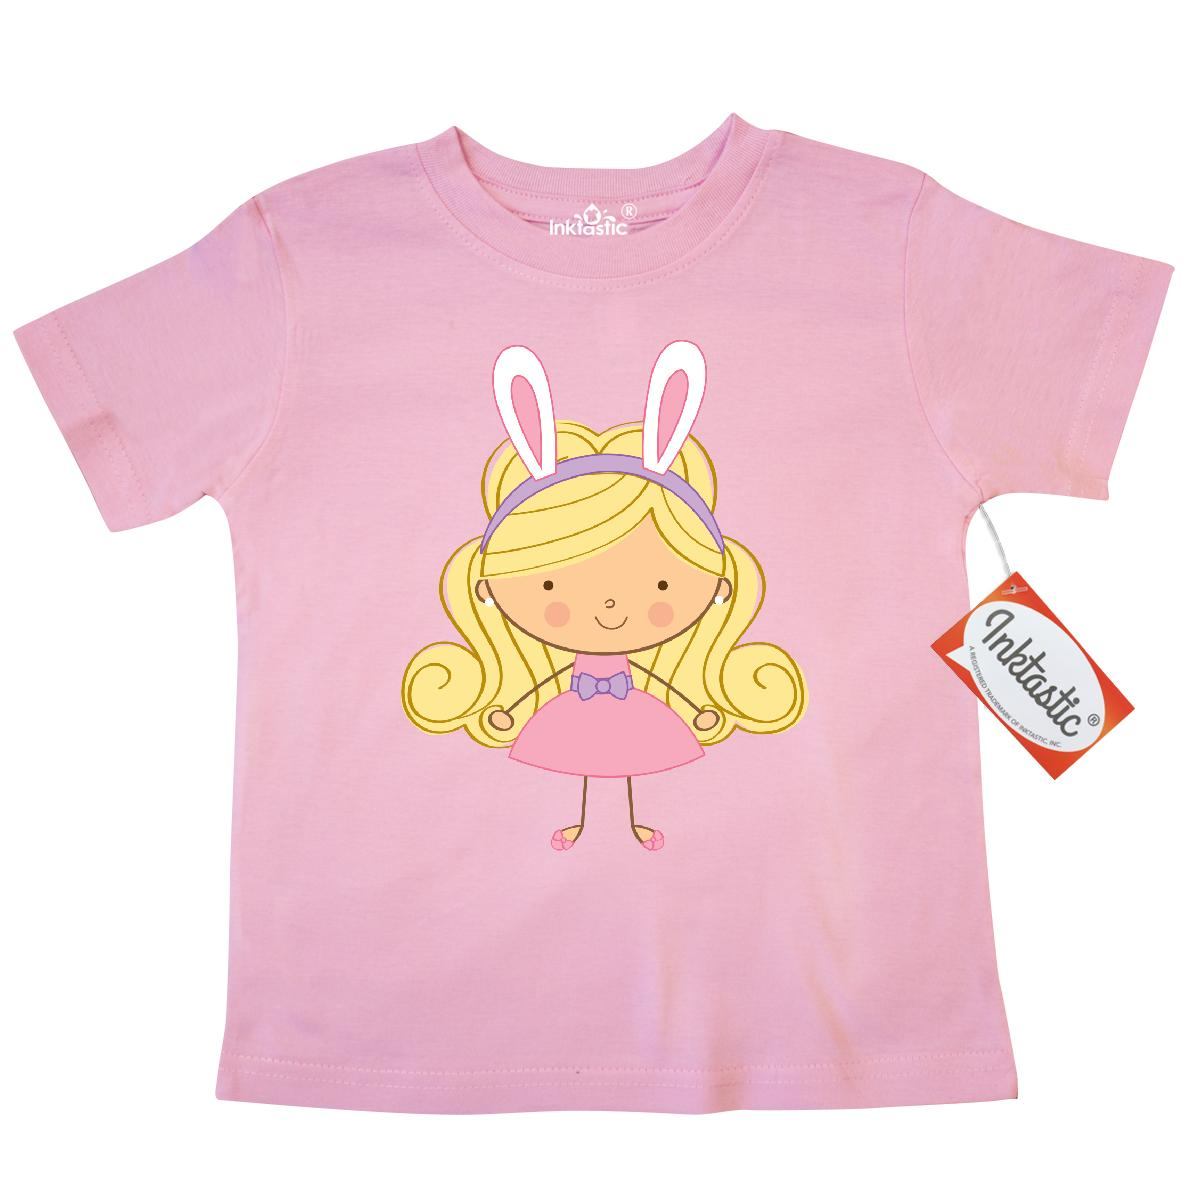 Inktastic Easter Girl Bunny Ears Toddler T-Shirt cute holiday personalized custom rabbit gift holidays spring tees. child preschooler kid clothing apparel hws